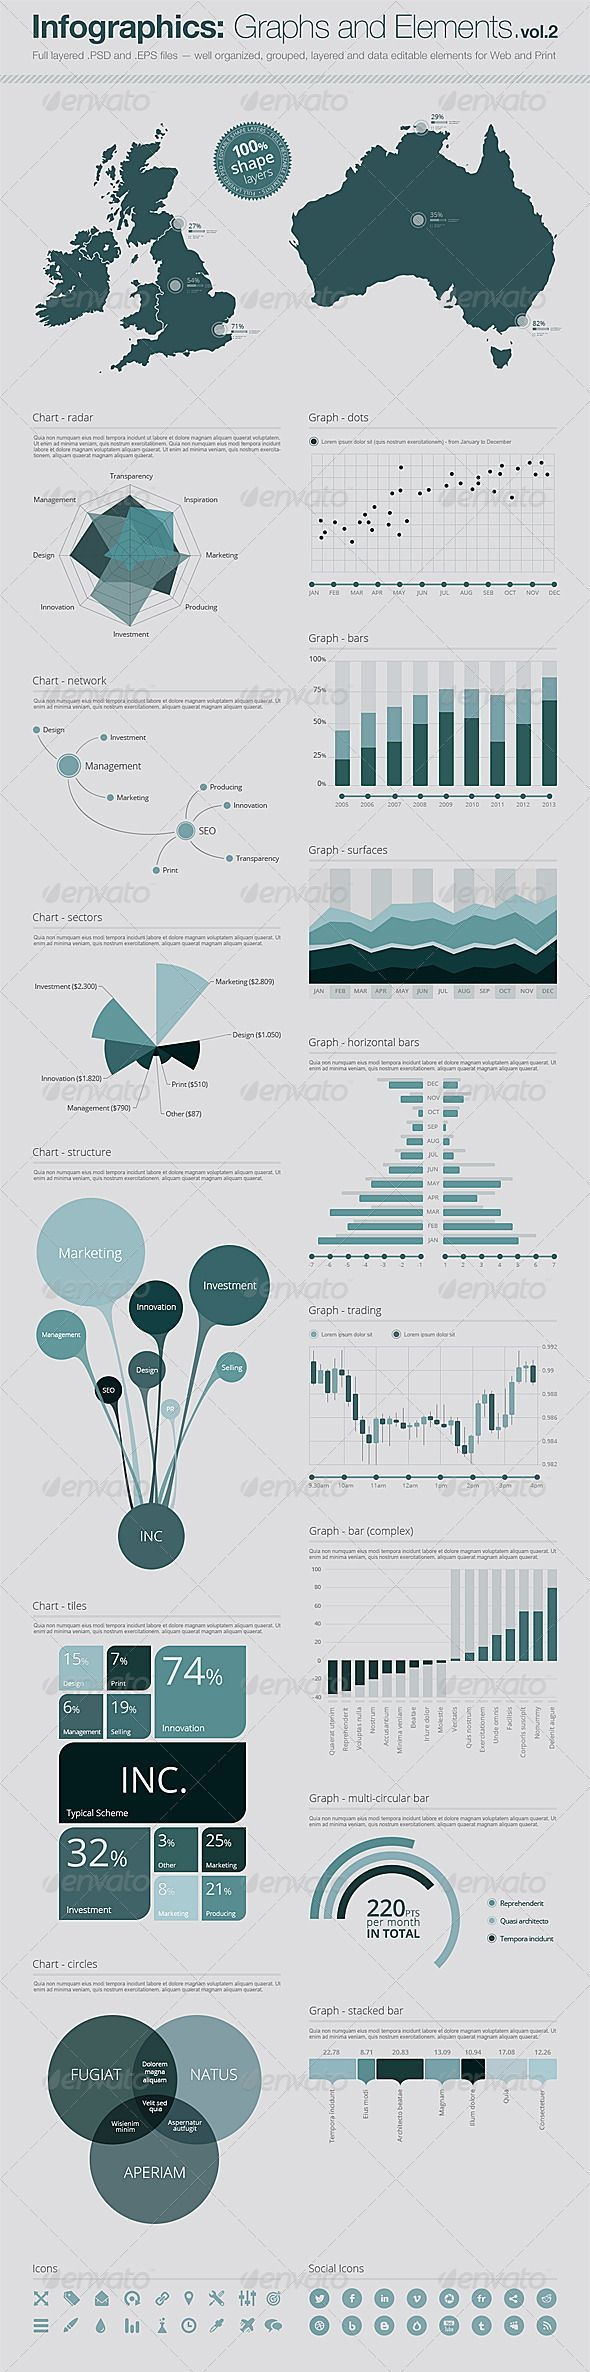 Infographics: Vector Graphs and Elements Vol.2 - Infographics. If you're a user experience professional, listen to The UX Blog Podcast on iTunes.